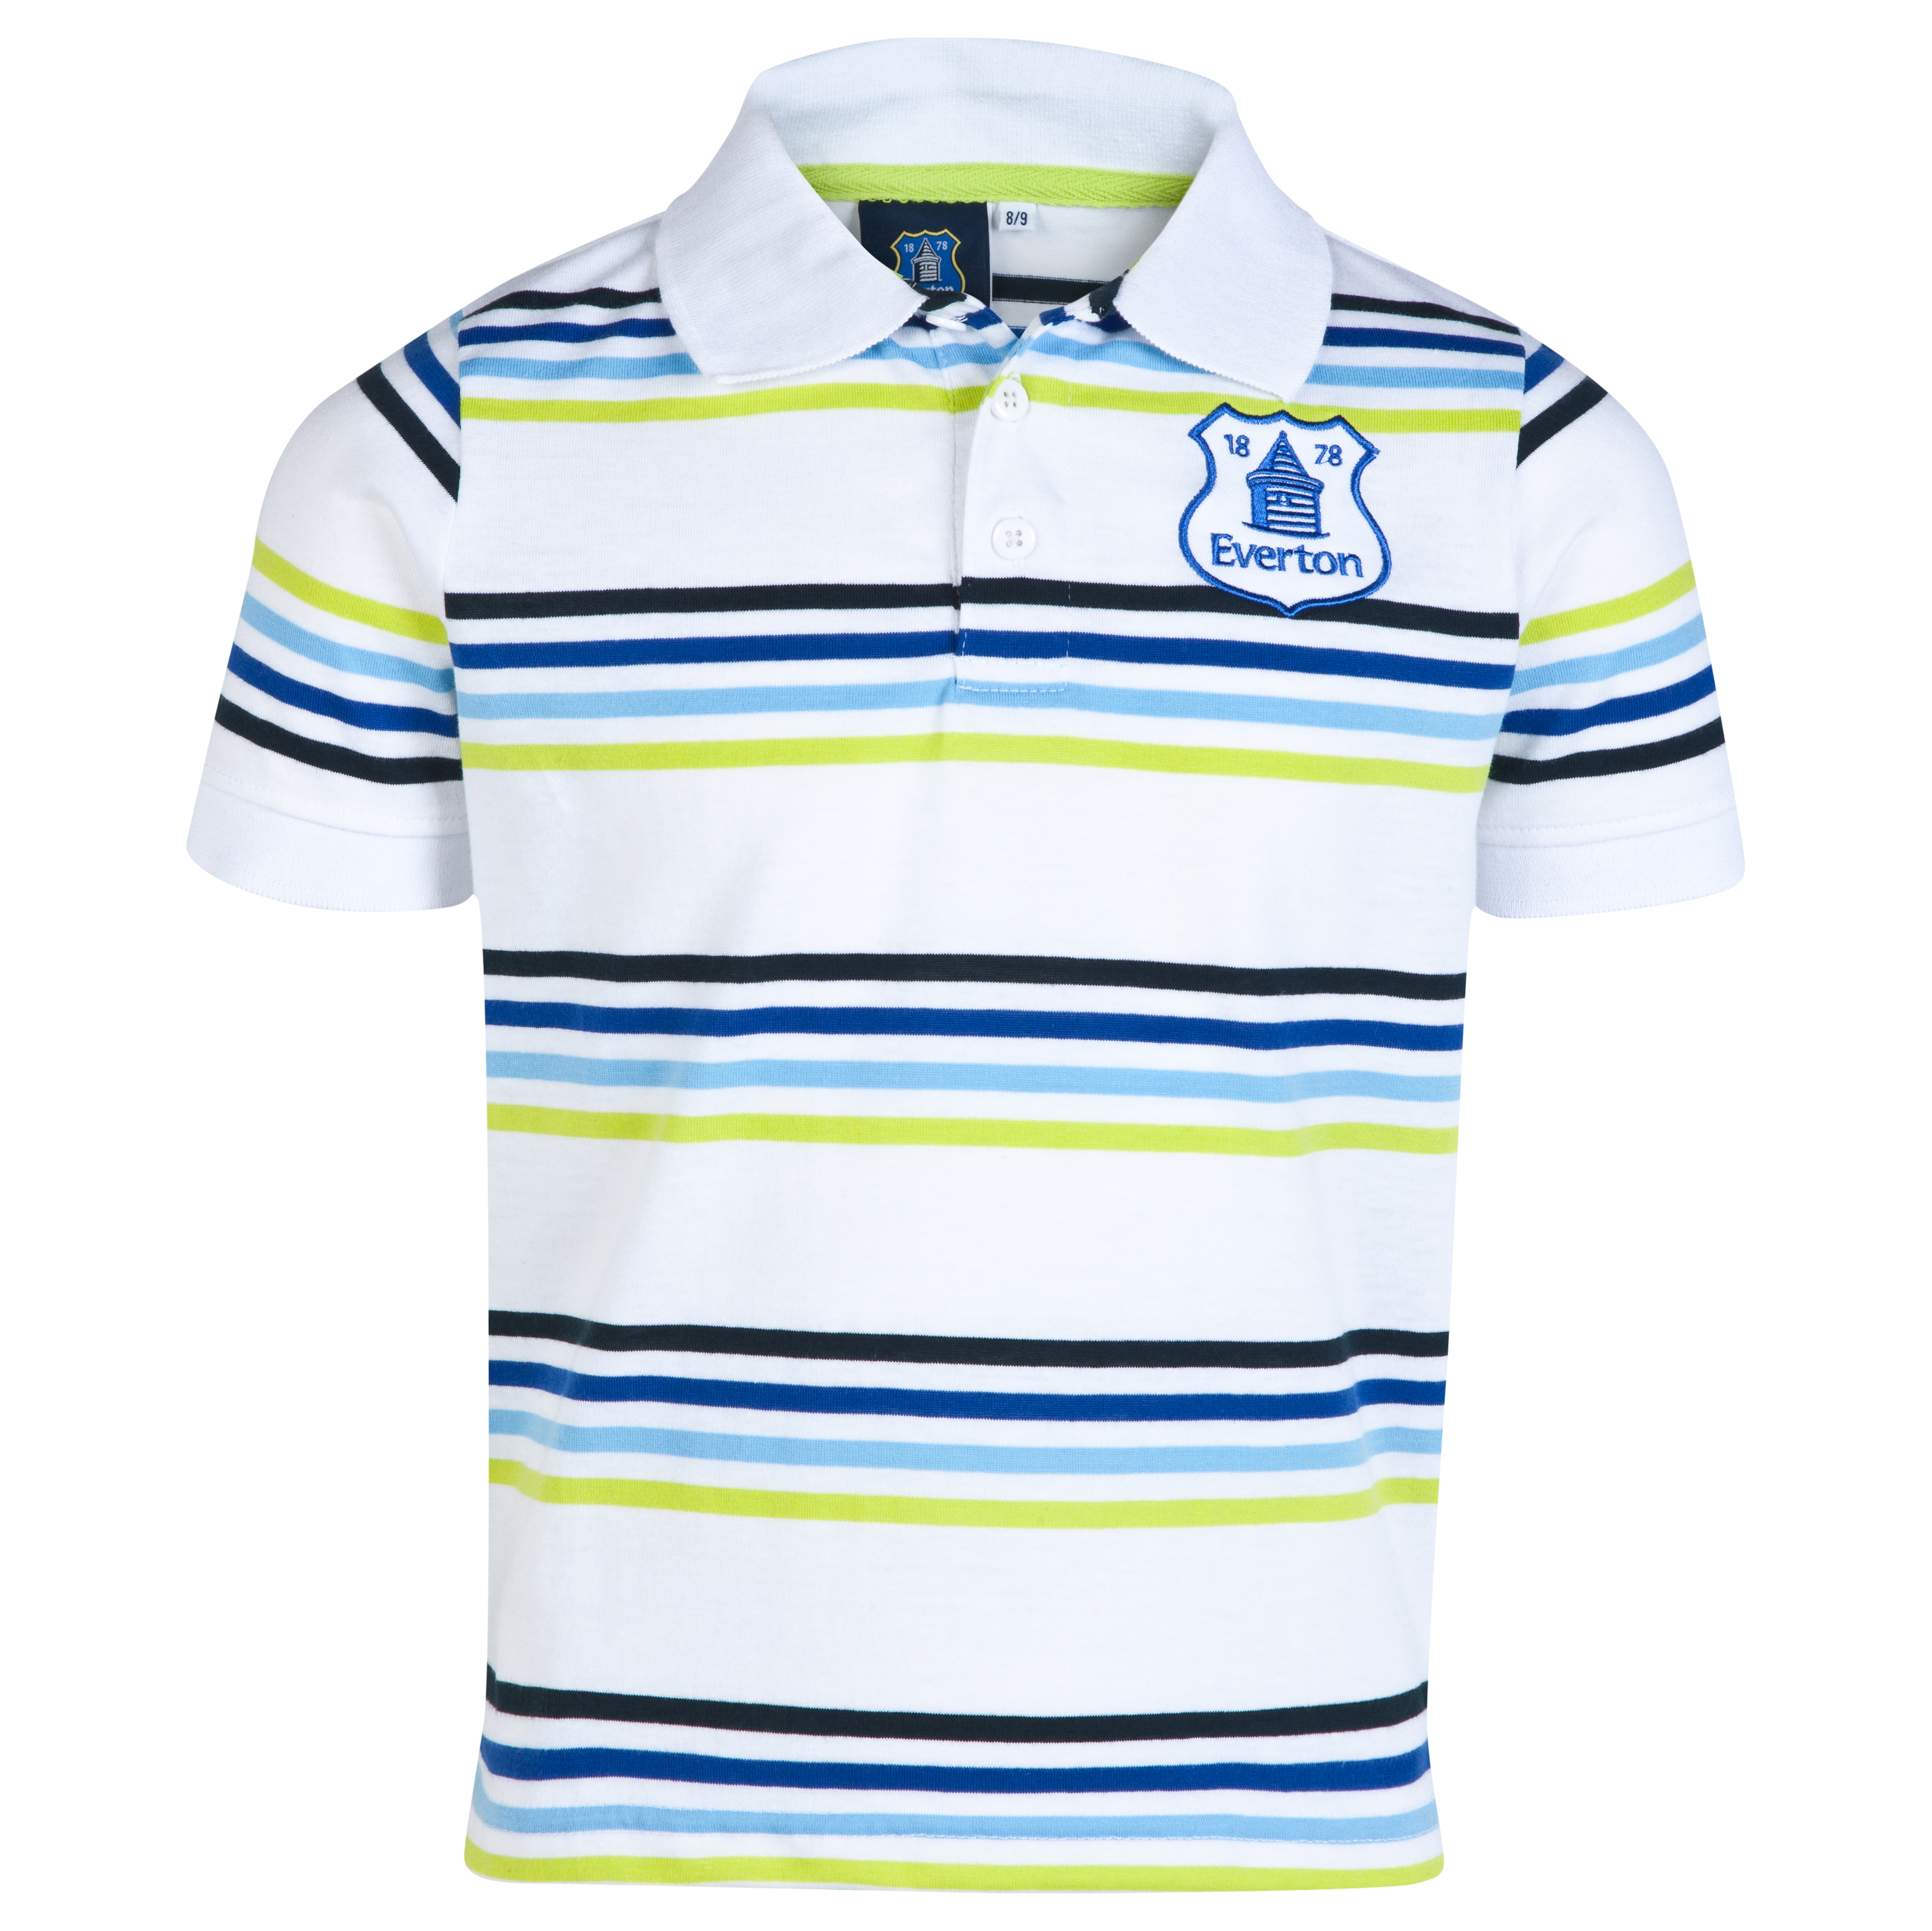 Everton Essentials Flare Polo Shirt-Infant Boys White